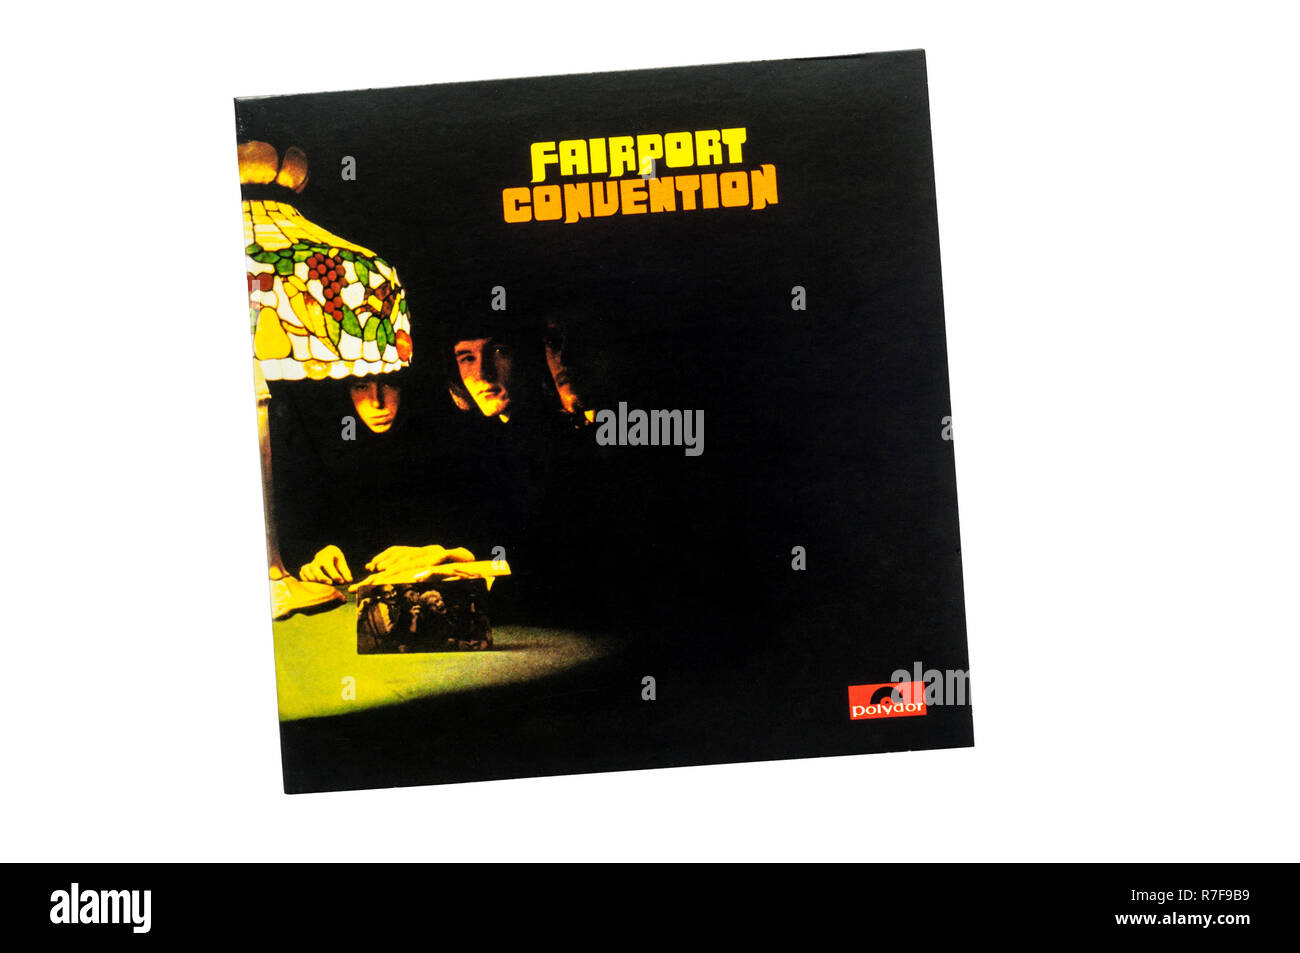 Fairport Convention was the first debut album by the British folk rock band of the same name. Released in 1967. - Stock Image